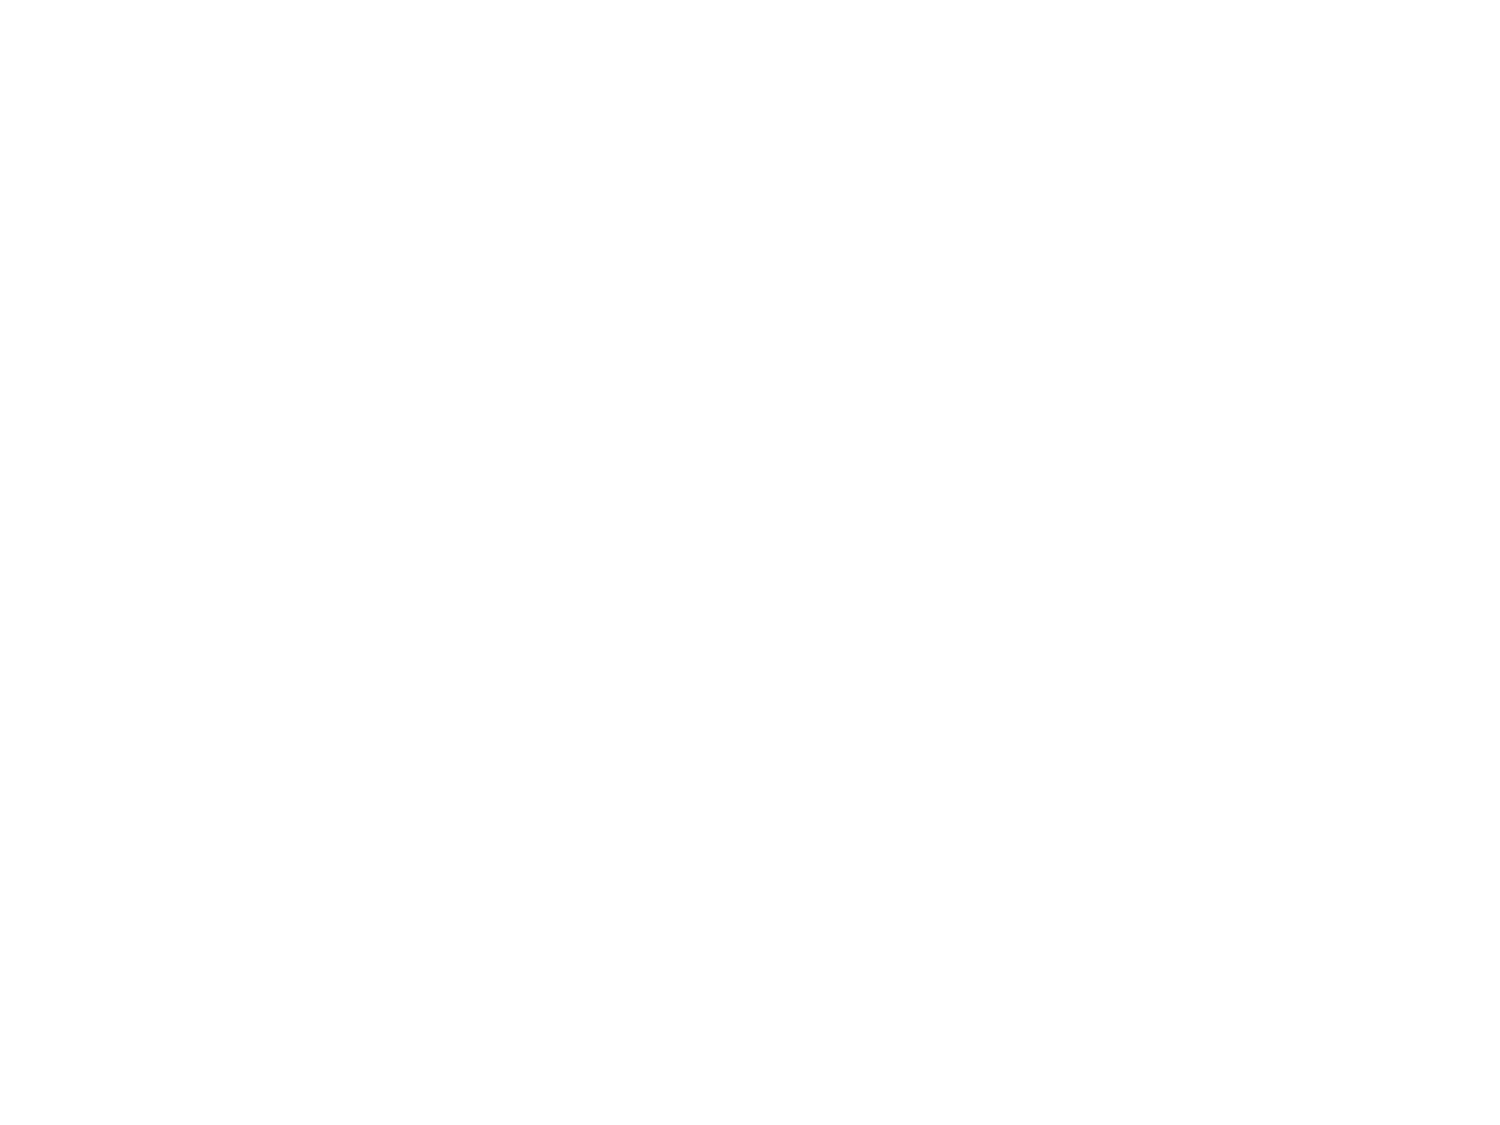 Speed Spa